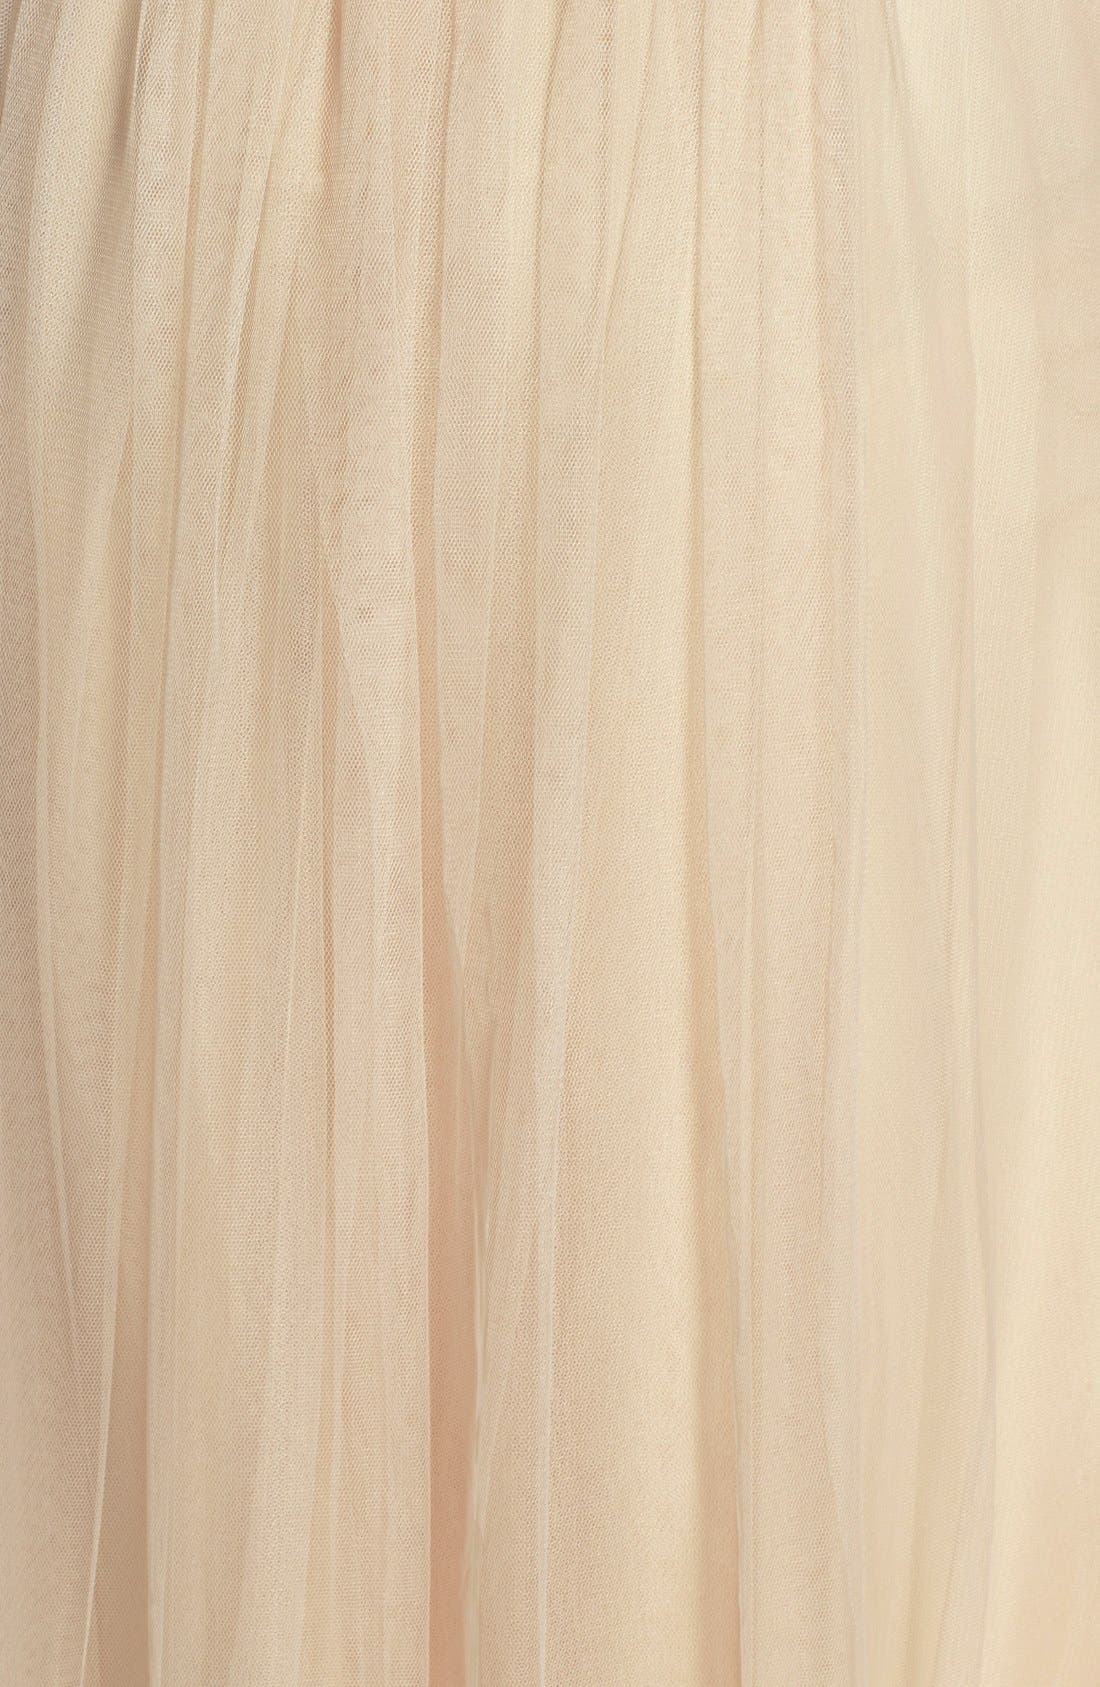 Annabelle Convertible Tulle Column Dress,                             Alternate thumbnail 148, color,